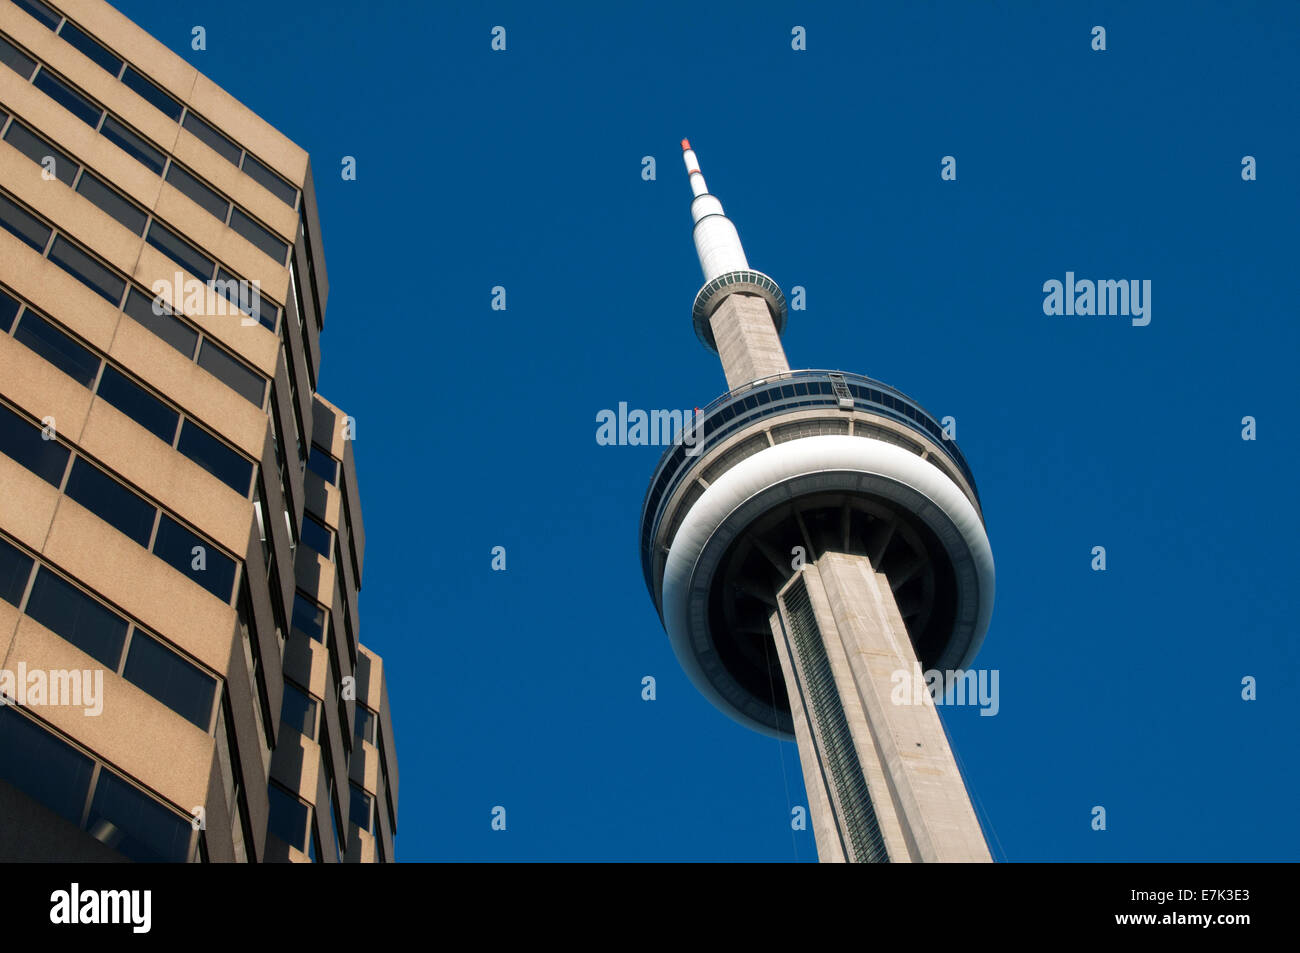 CN tower downtown Toronto Canada - Stock Image